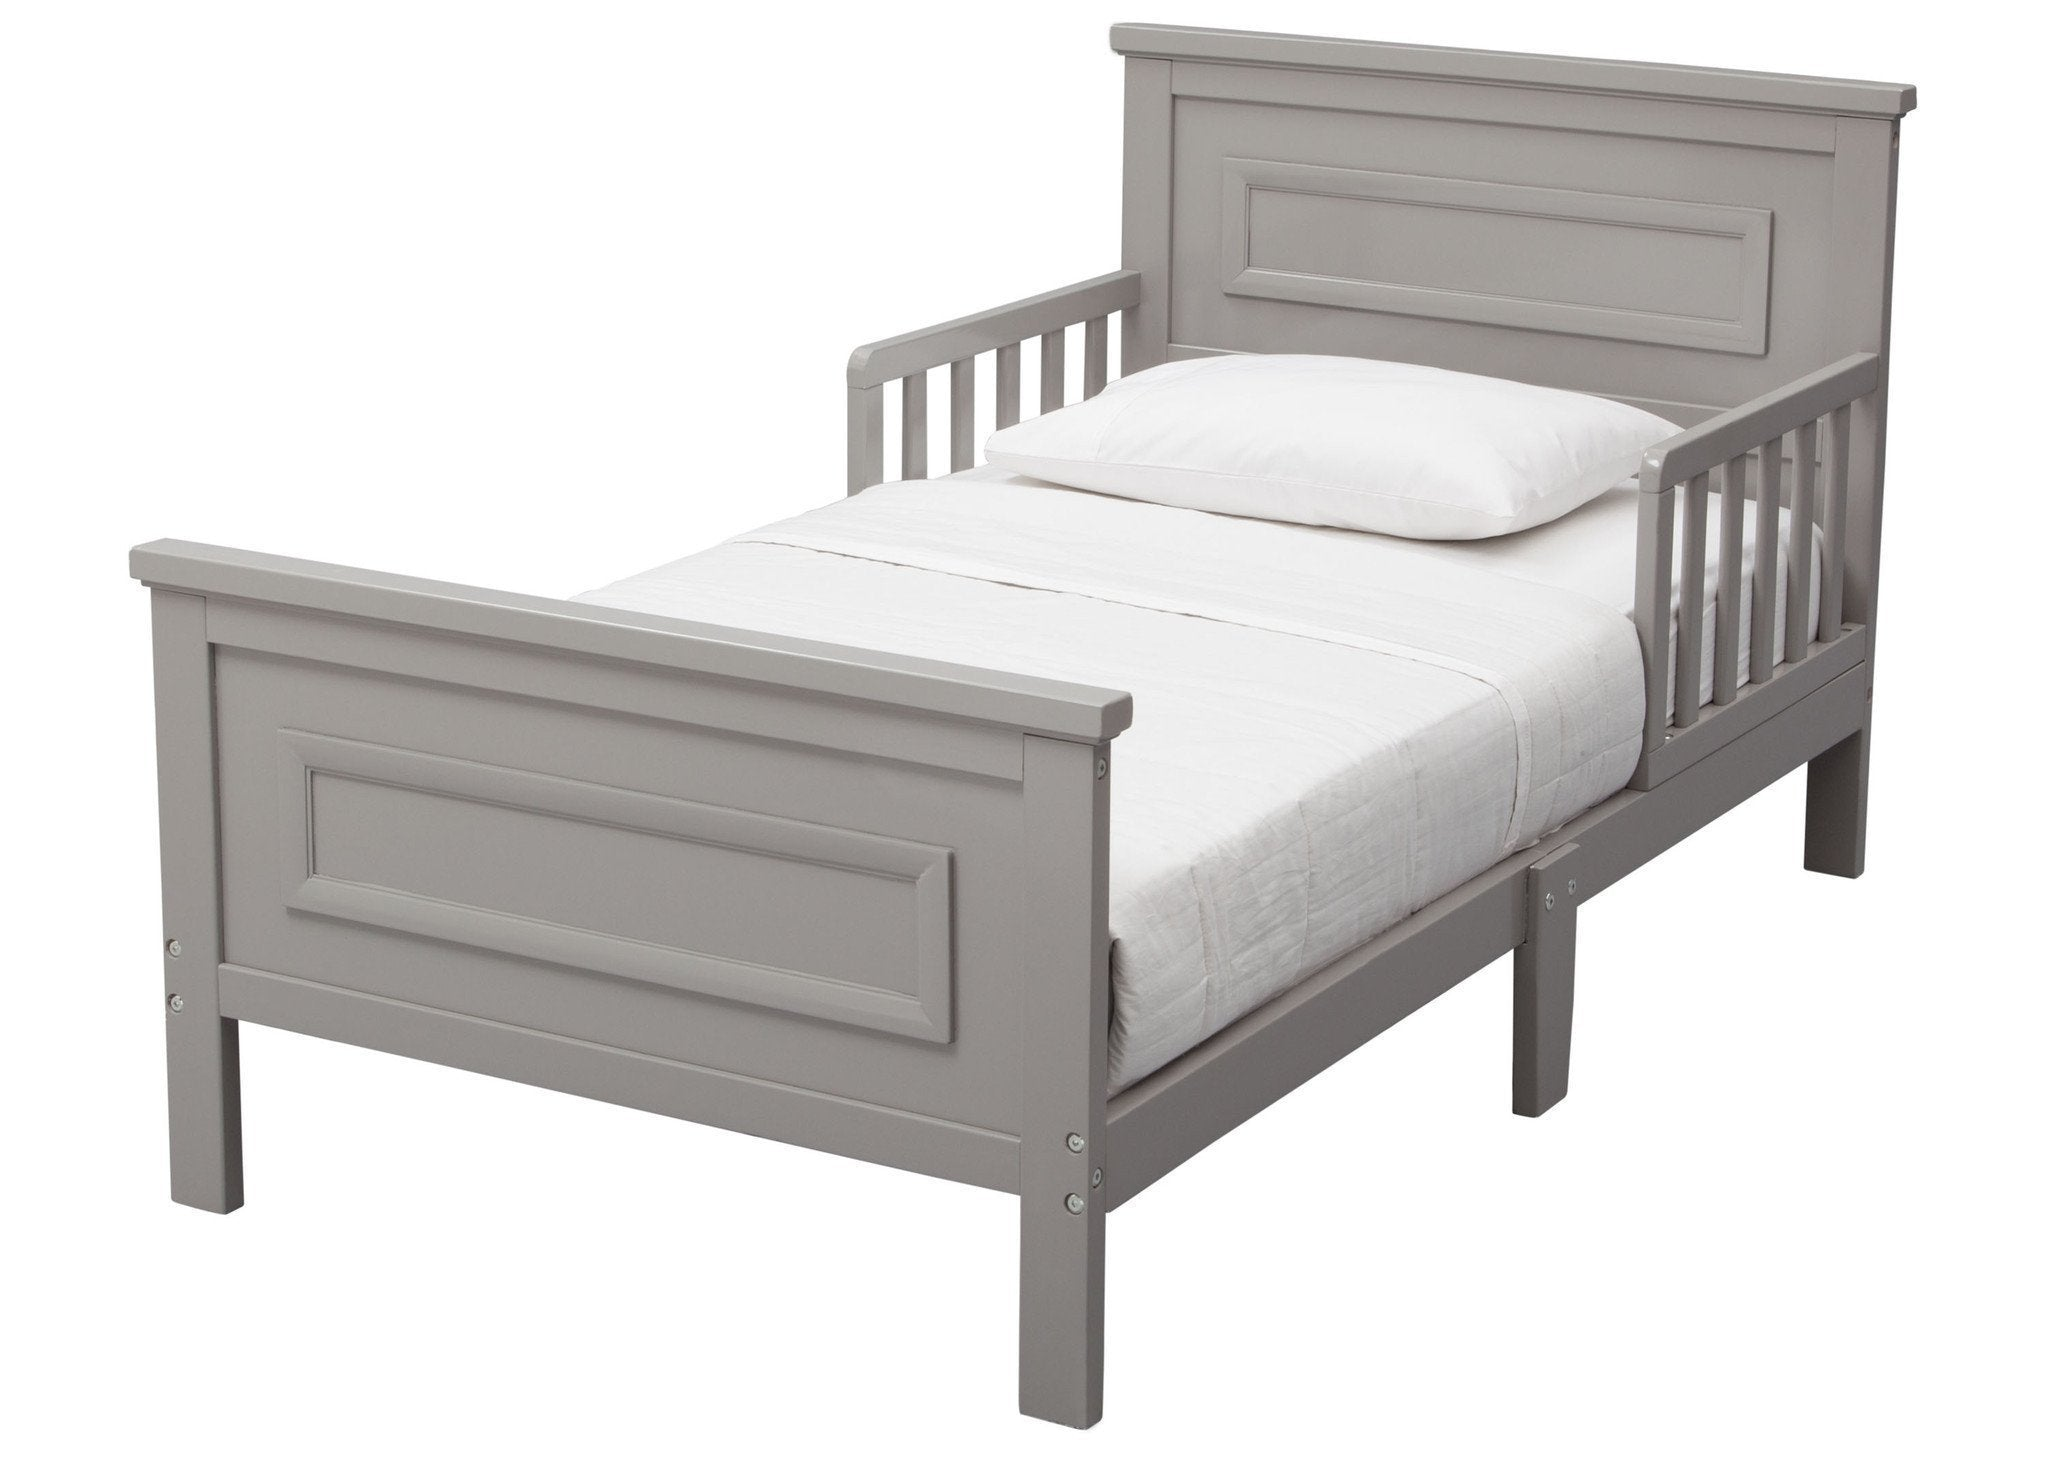 Delta Children Grey (026) Next Steps Toddler Bed, Left Side View a3a